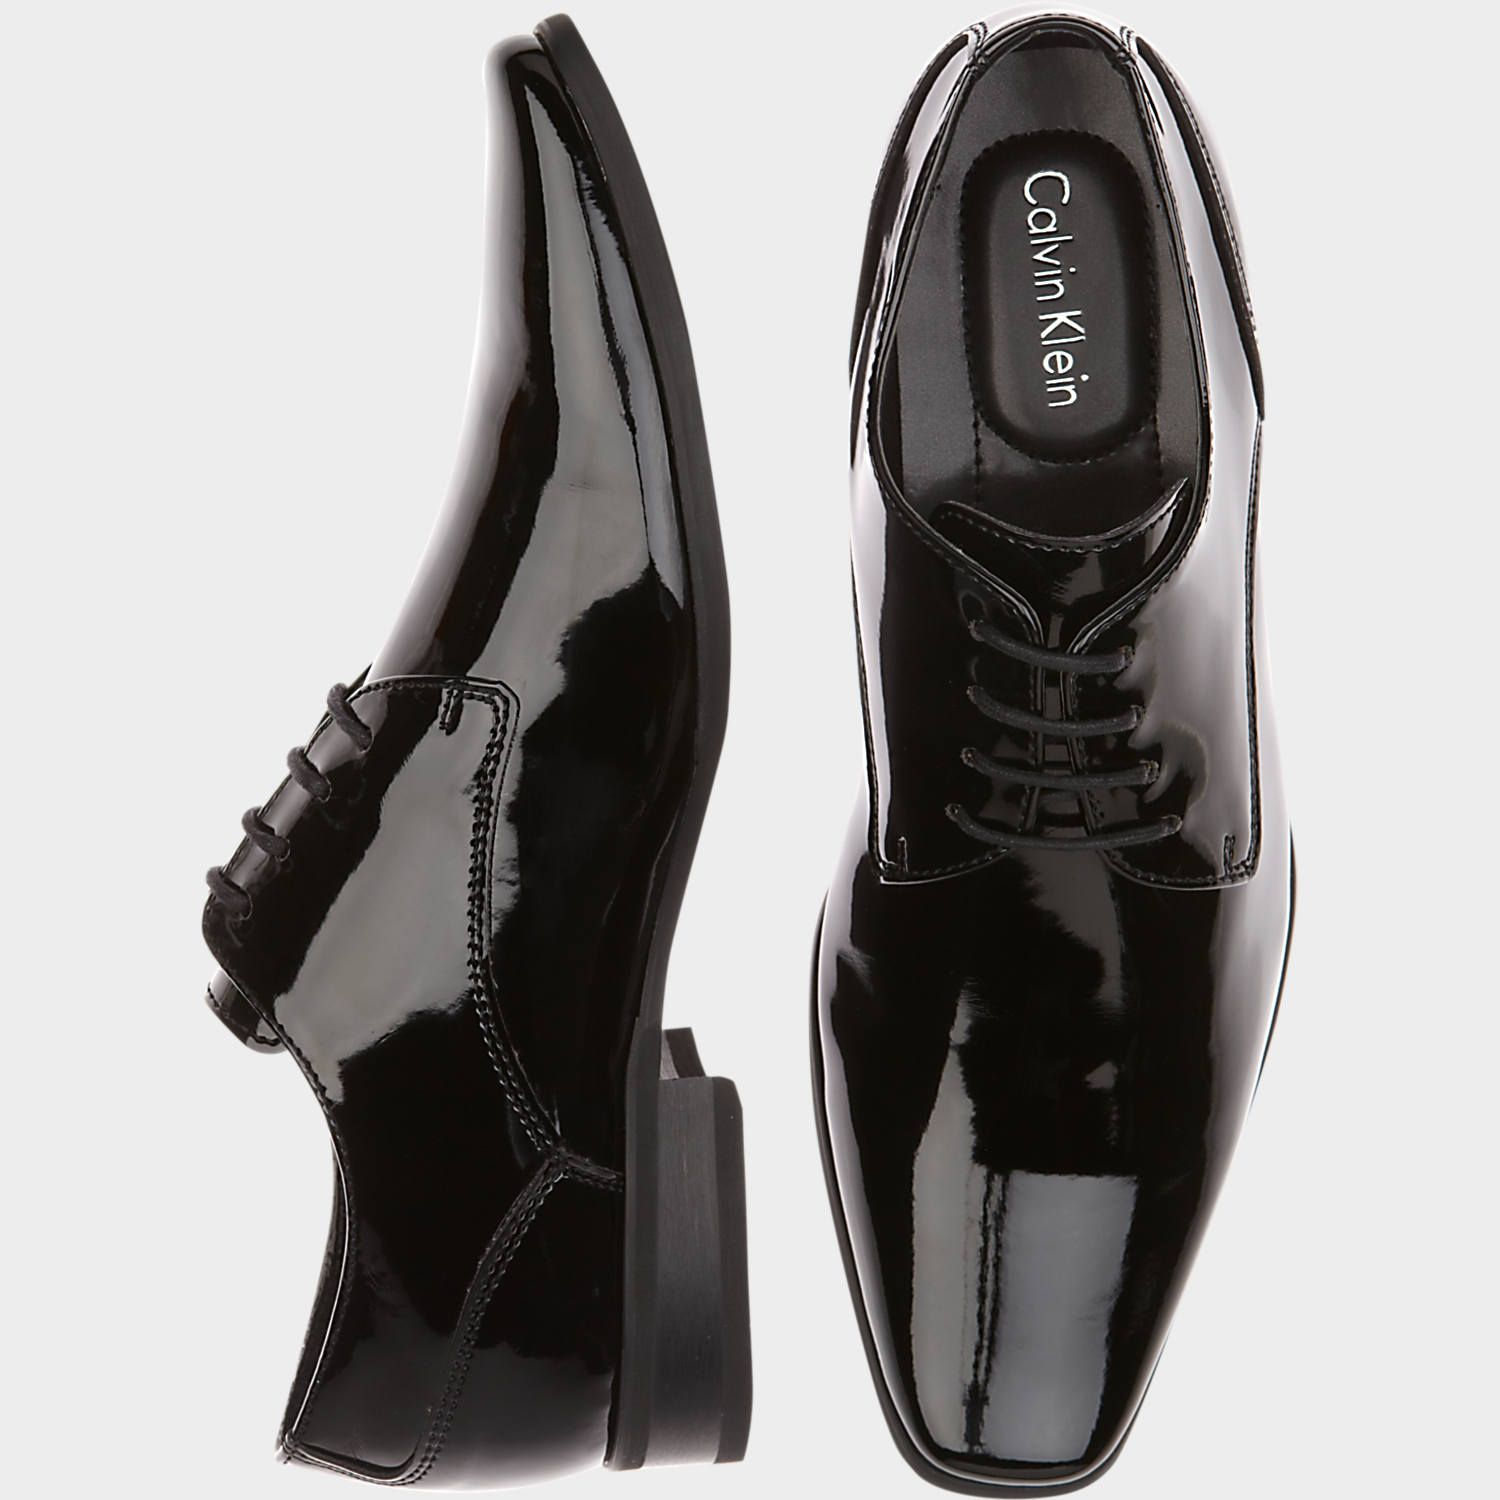 6b94897d3 Home in 2019 | for the guys | Tuxedo shoes, Formal shoes for men ...